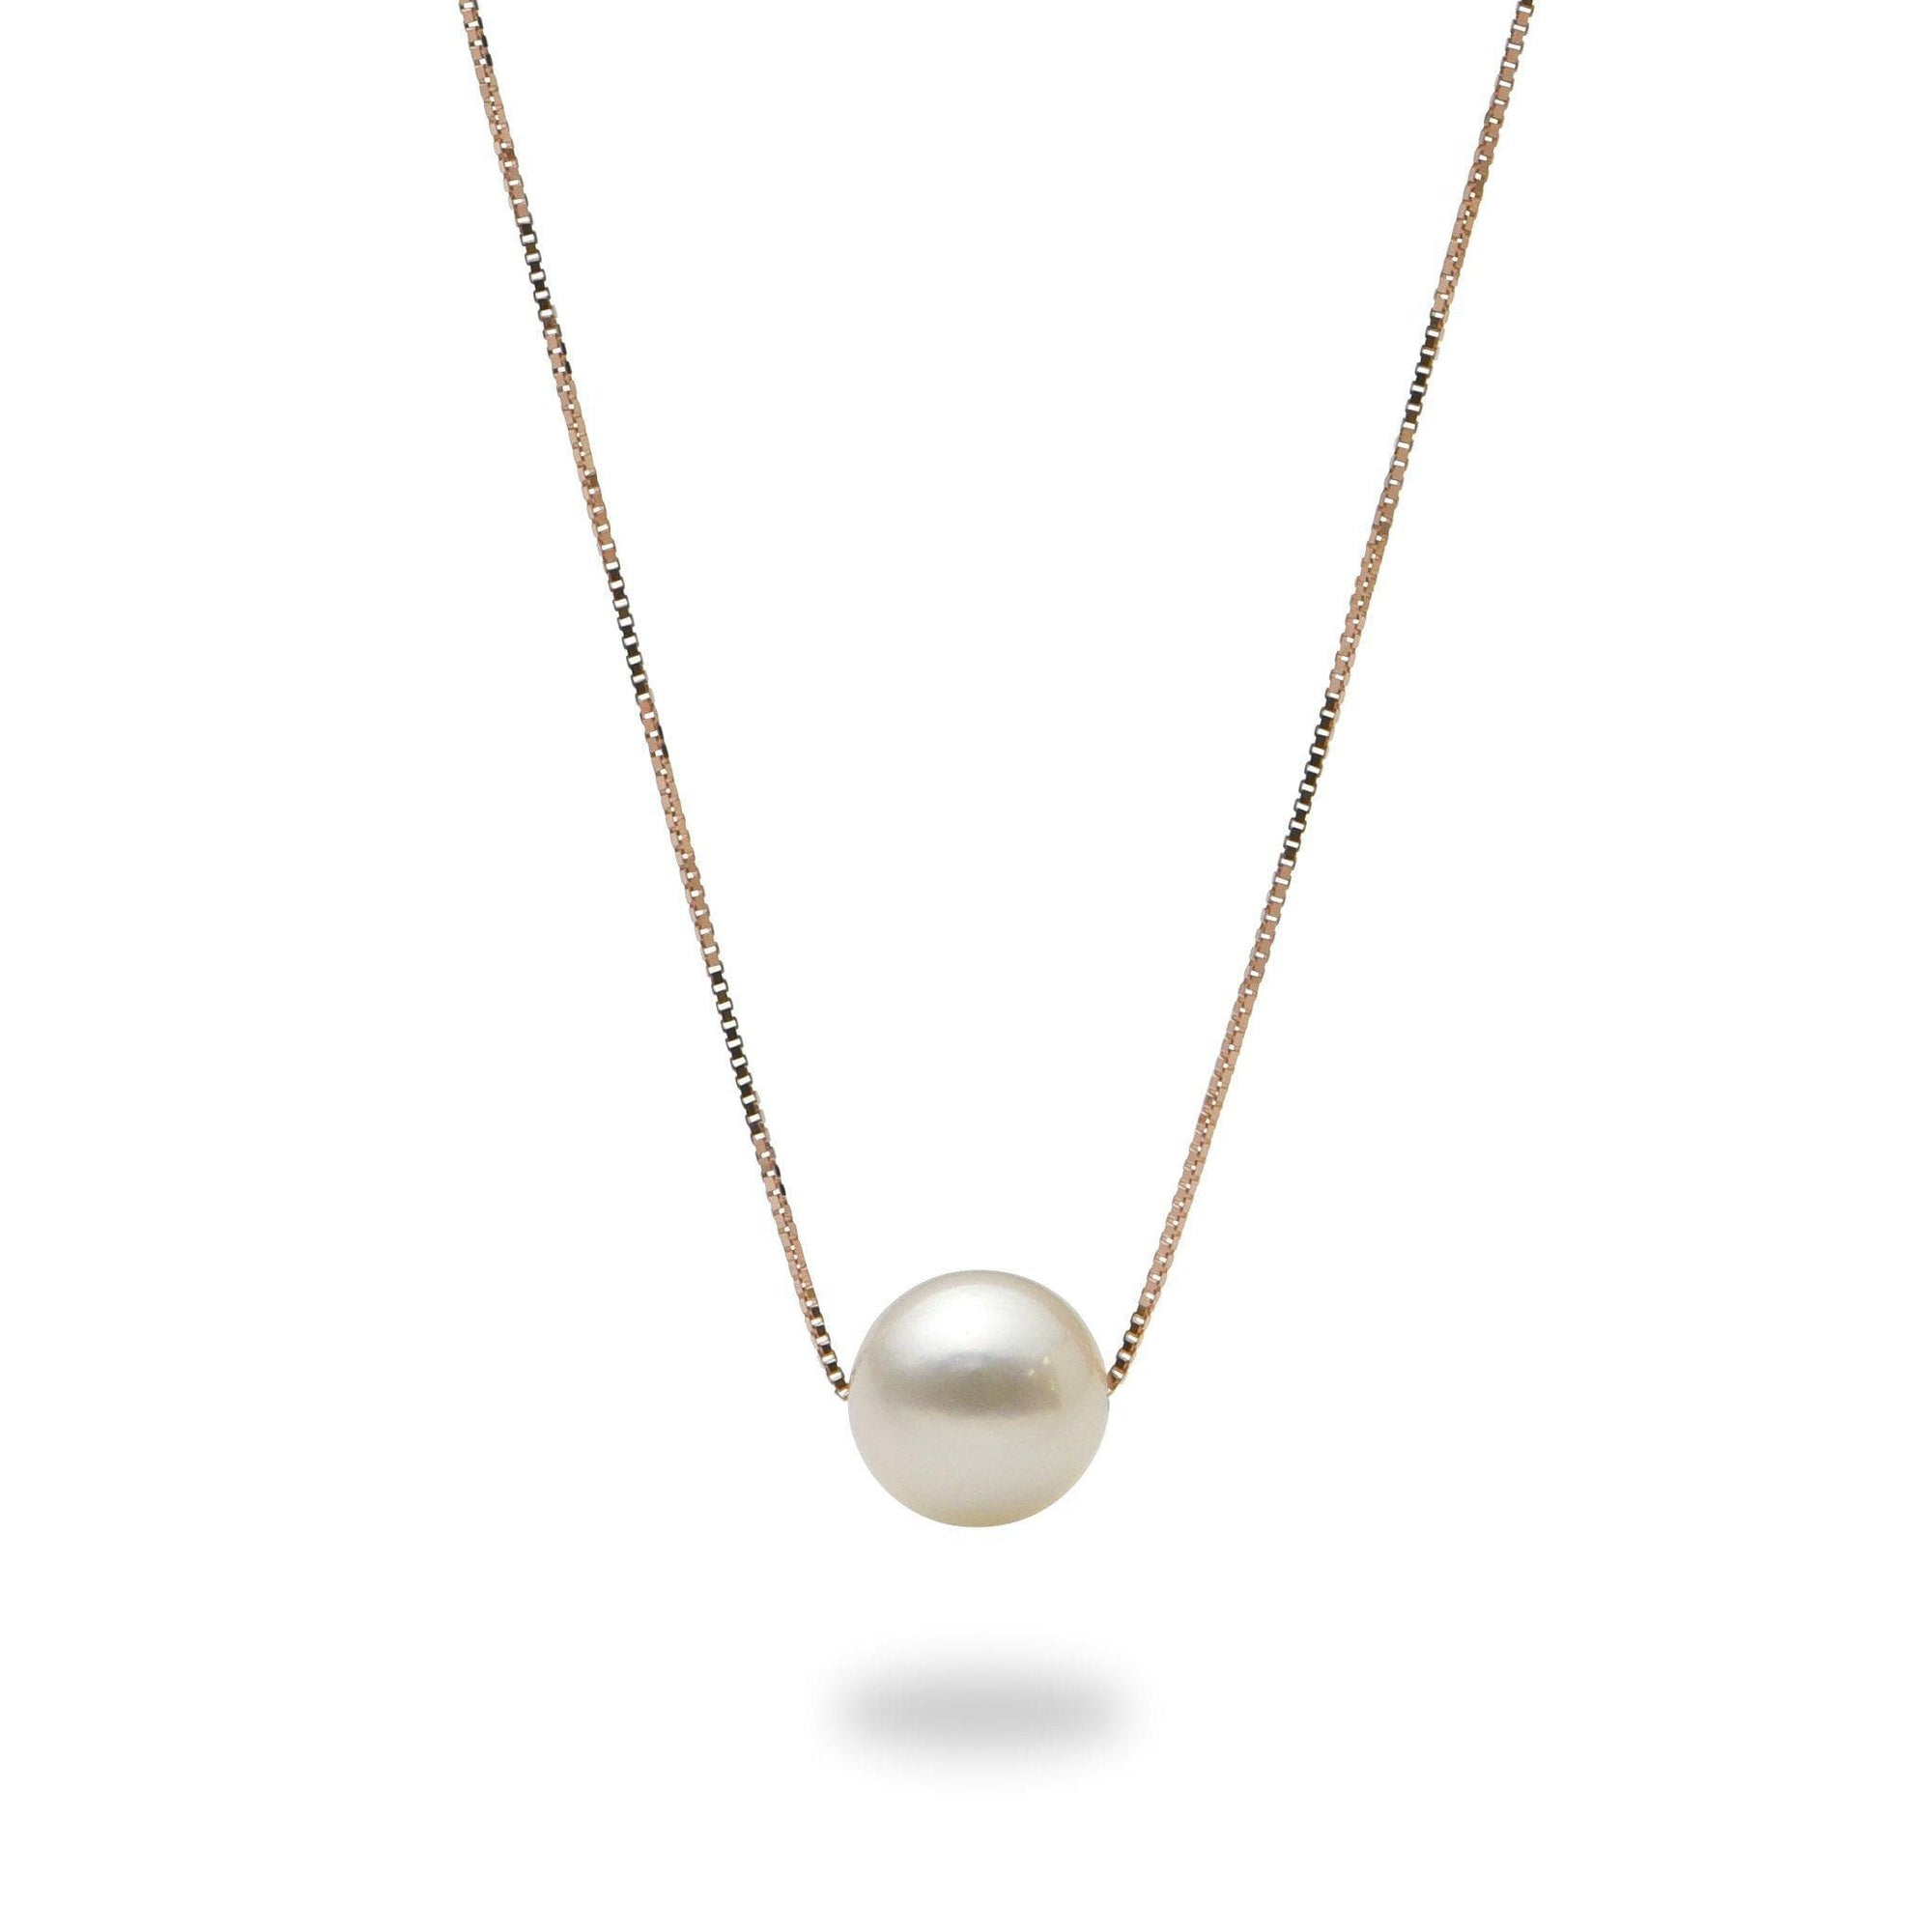 Akoya Pearl Necklace in 14K Rose Gold (8 mm) - Maui Divers Jewelry